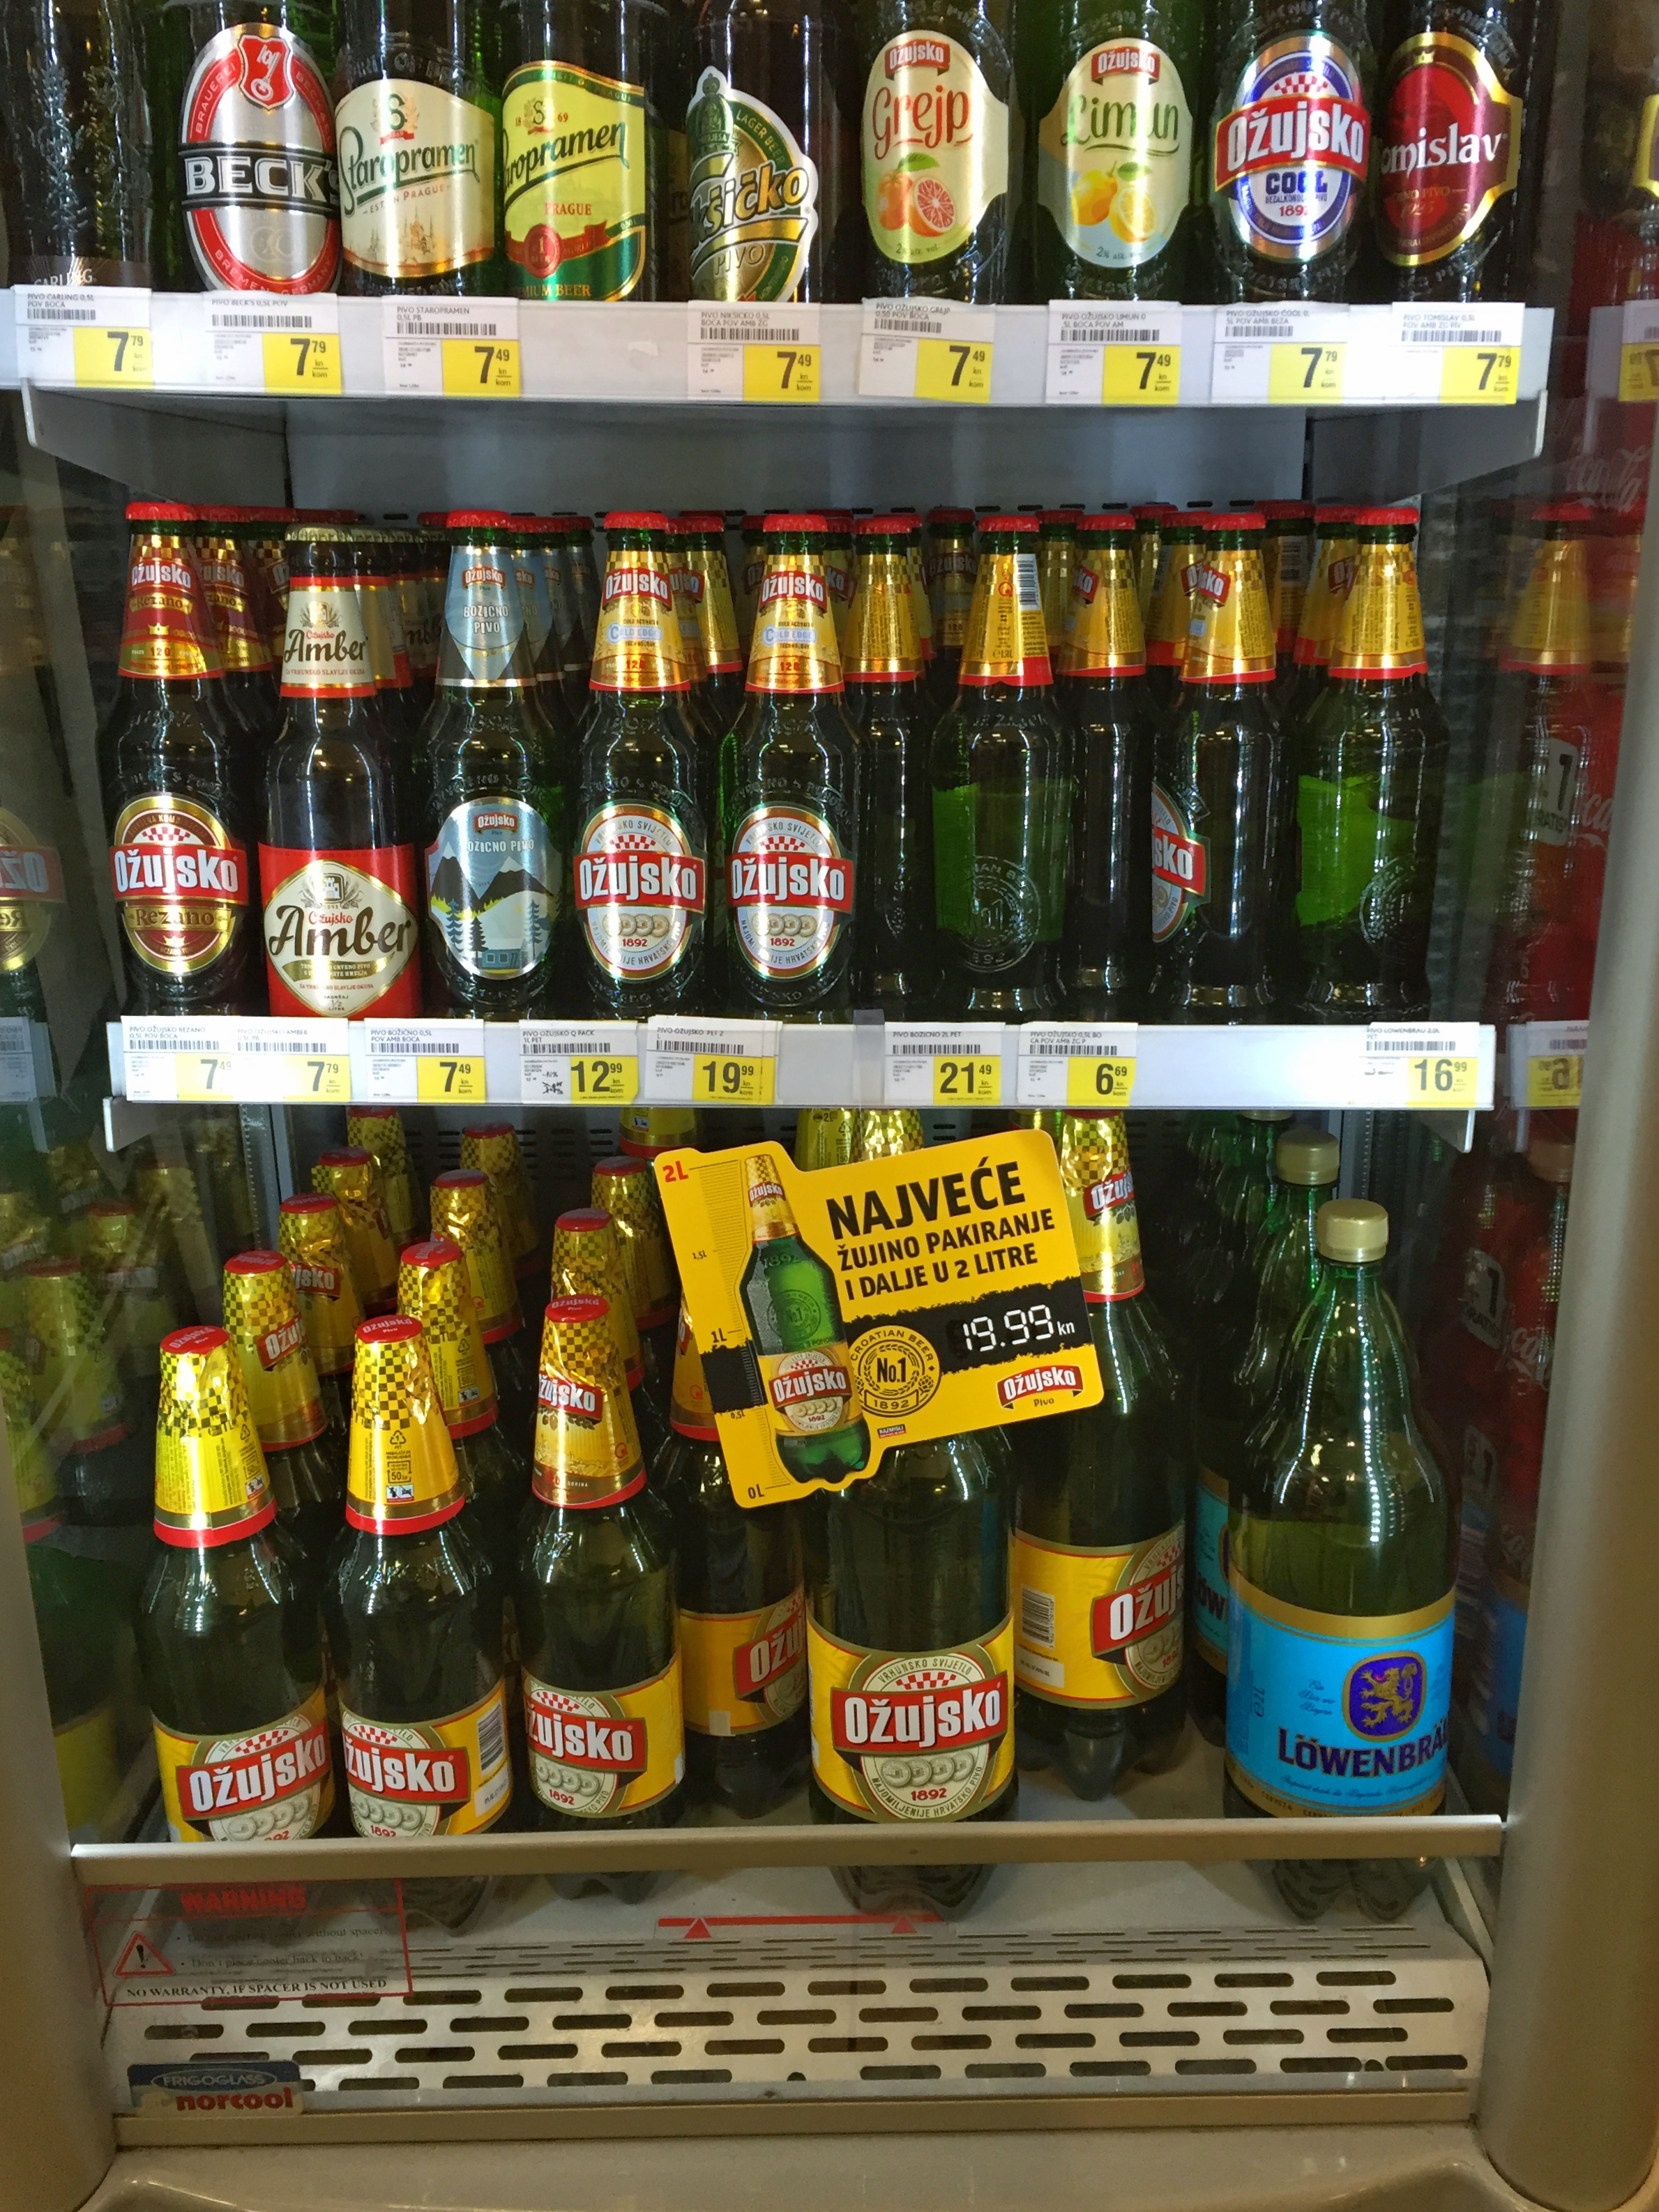 grocery stores sell beer in plastic liter bottles